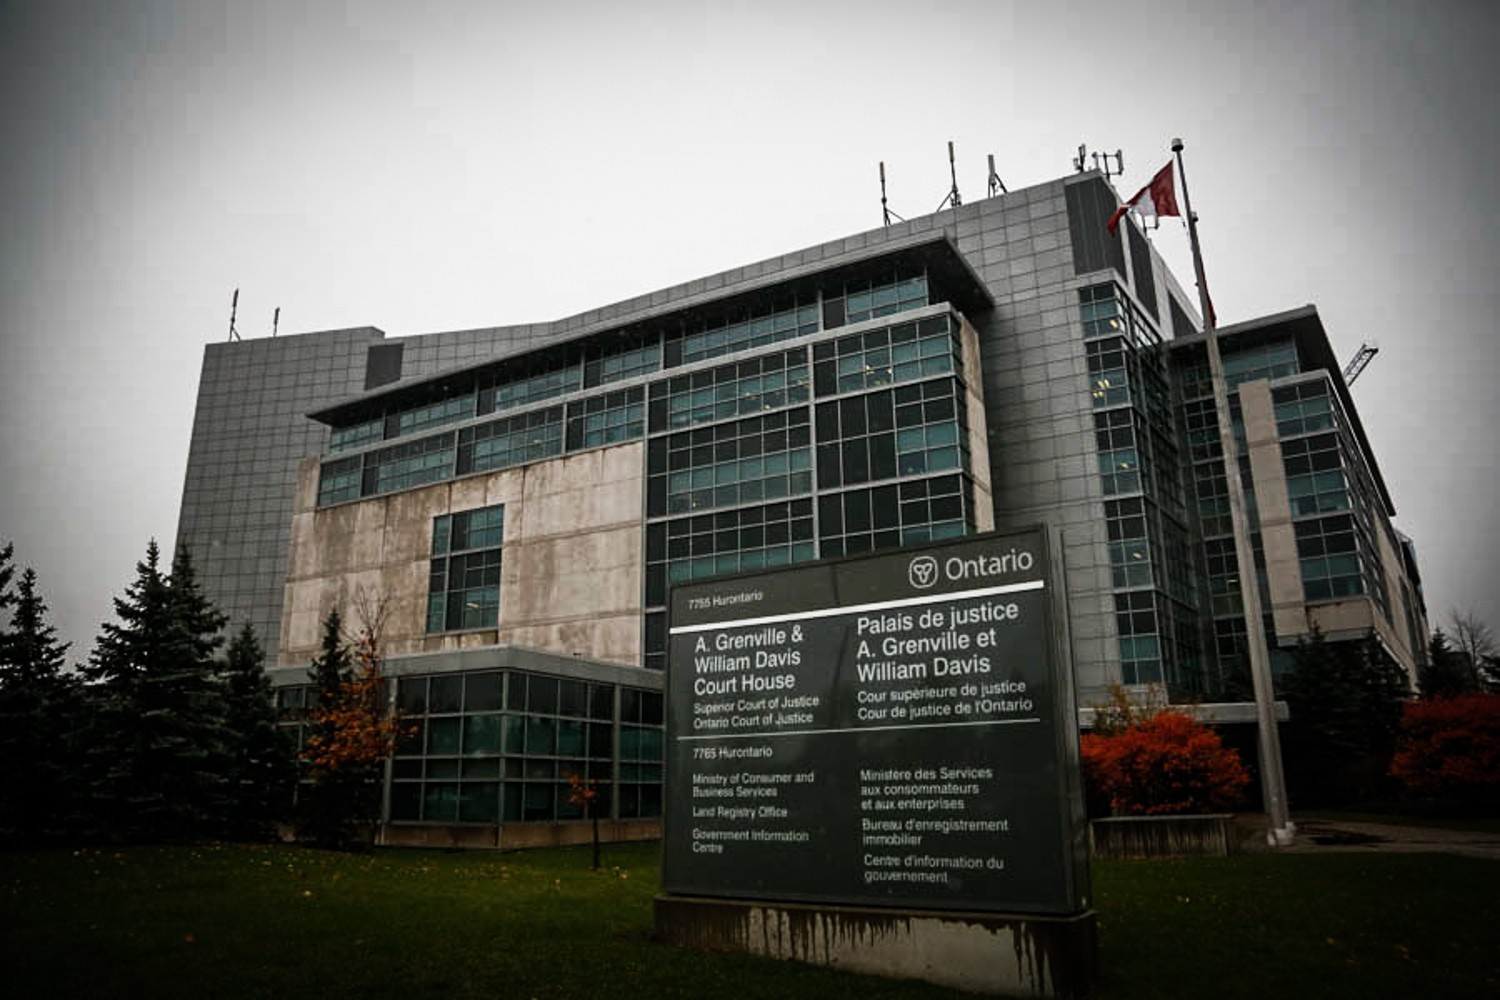 Ontario can expect payoffs from putting more cash into prosecuting human traffickers, advocates say